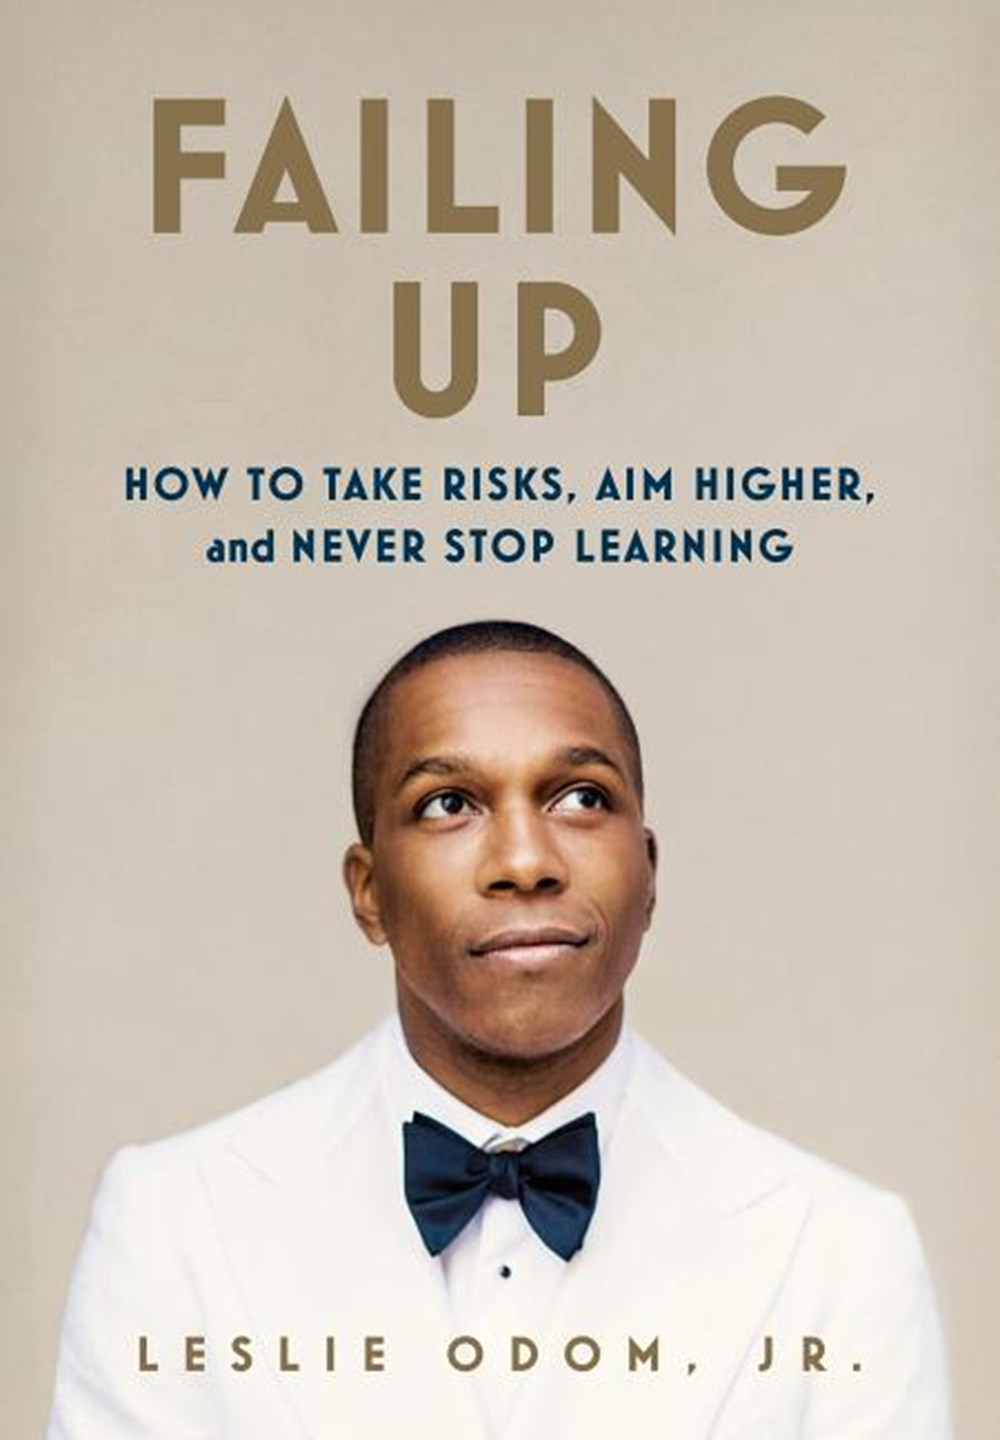 Failing Up How to Take Risks, Aim Higher, and Never Stop Learning